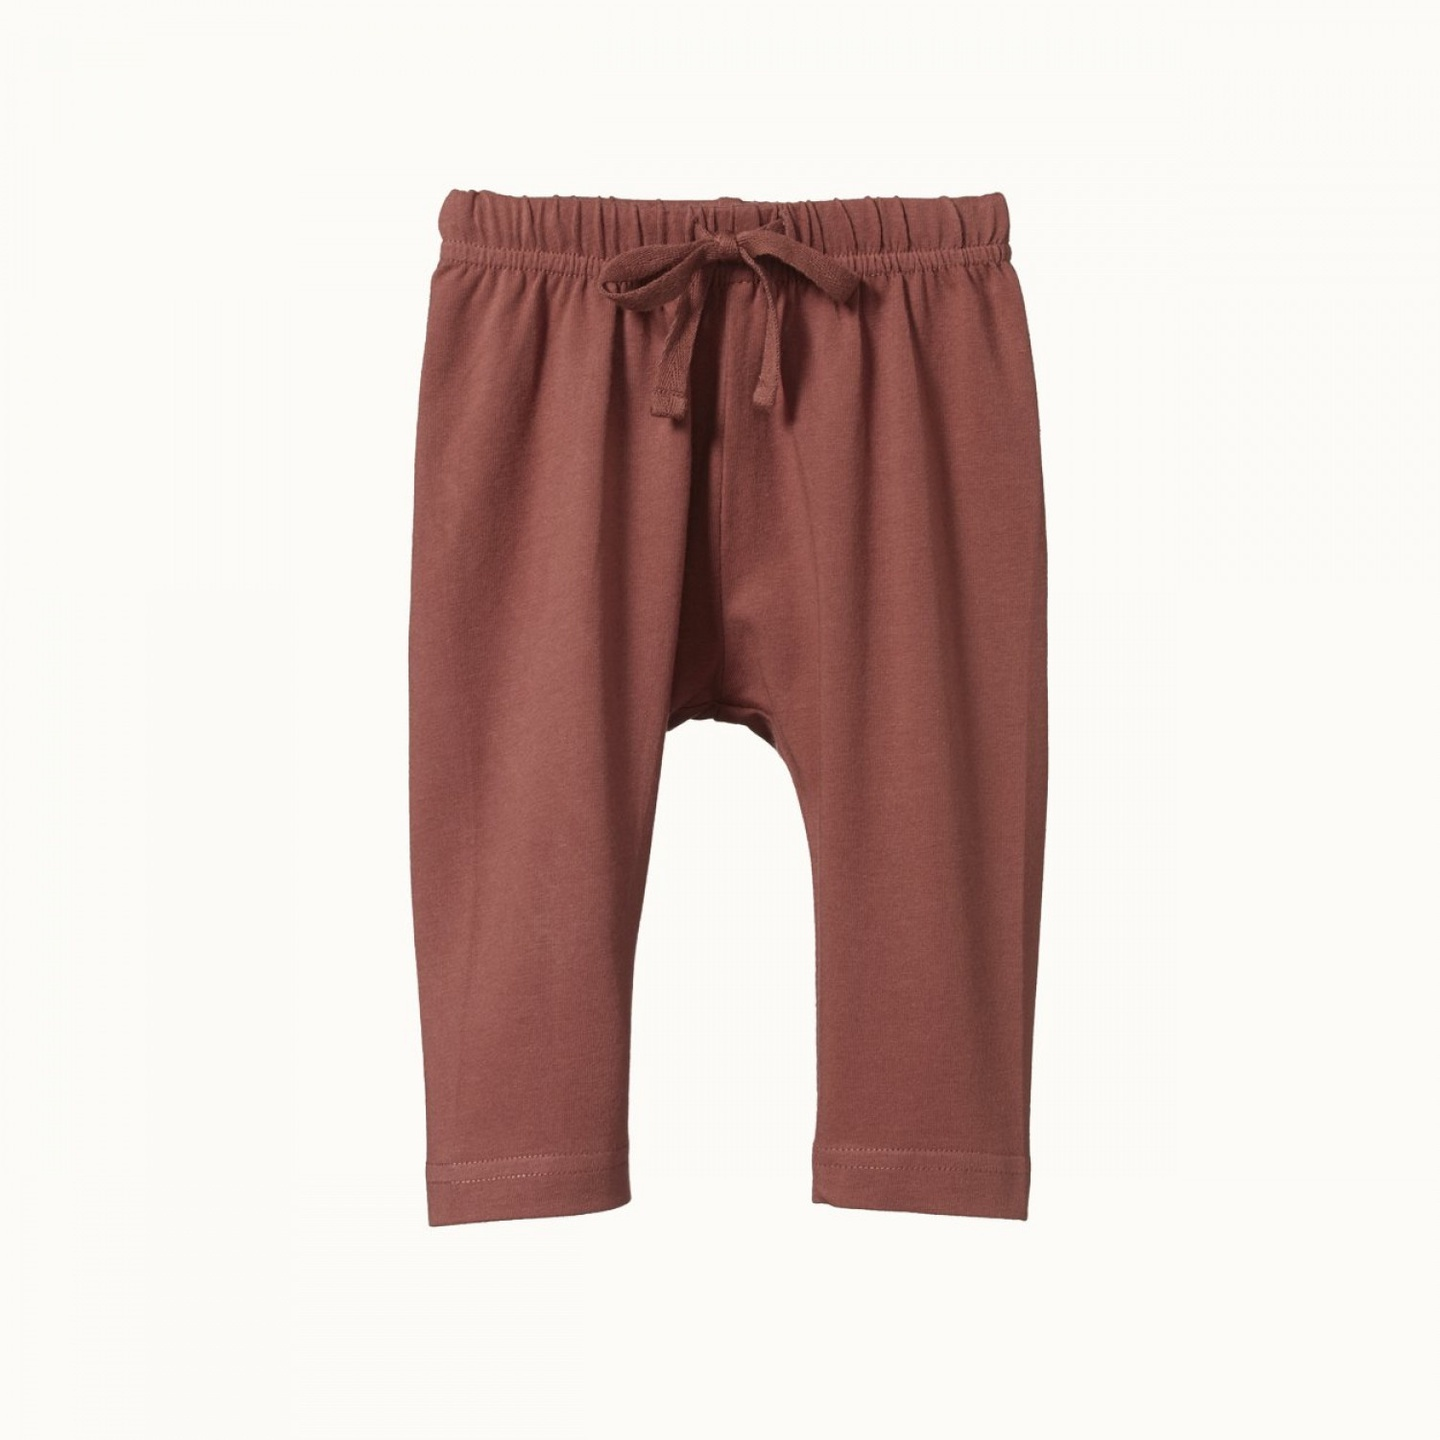 SUNDAY PANTS - TERRACOTTA